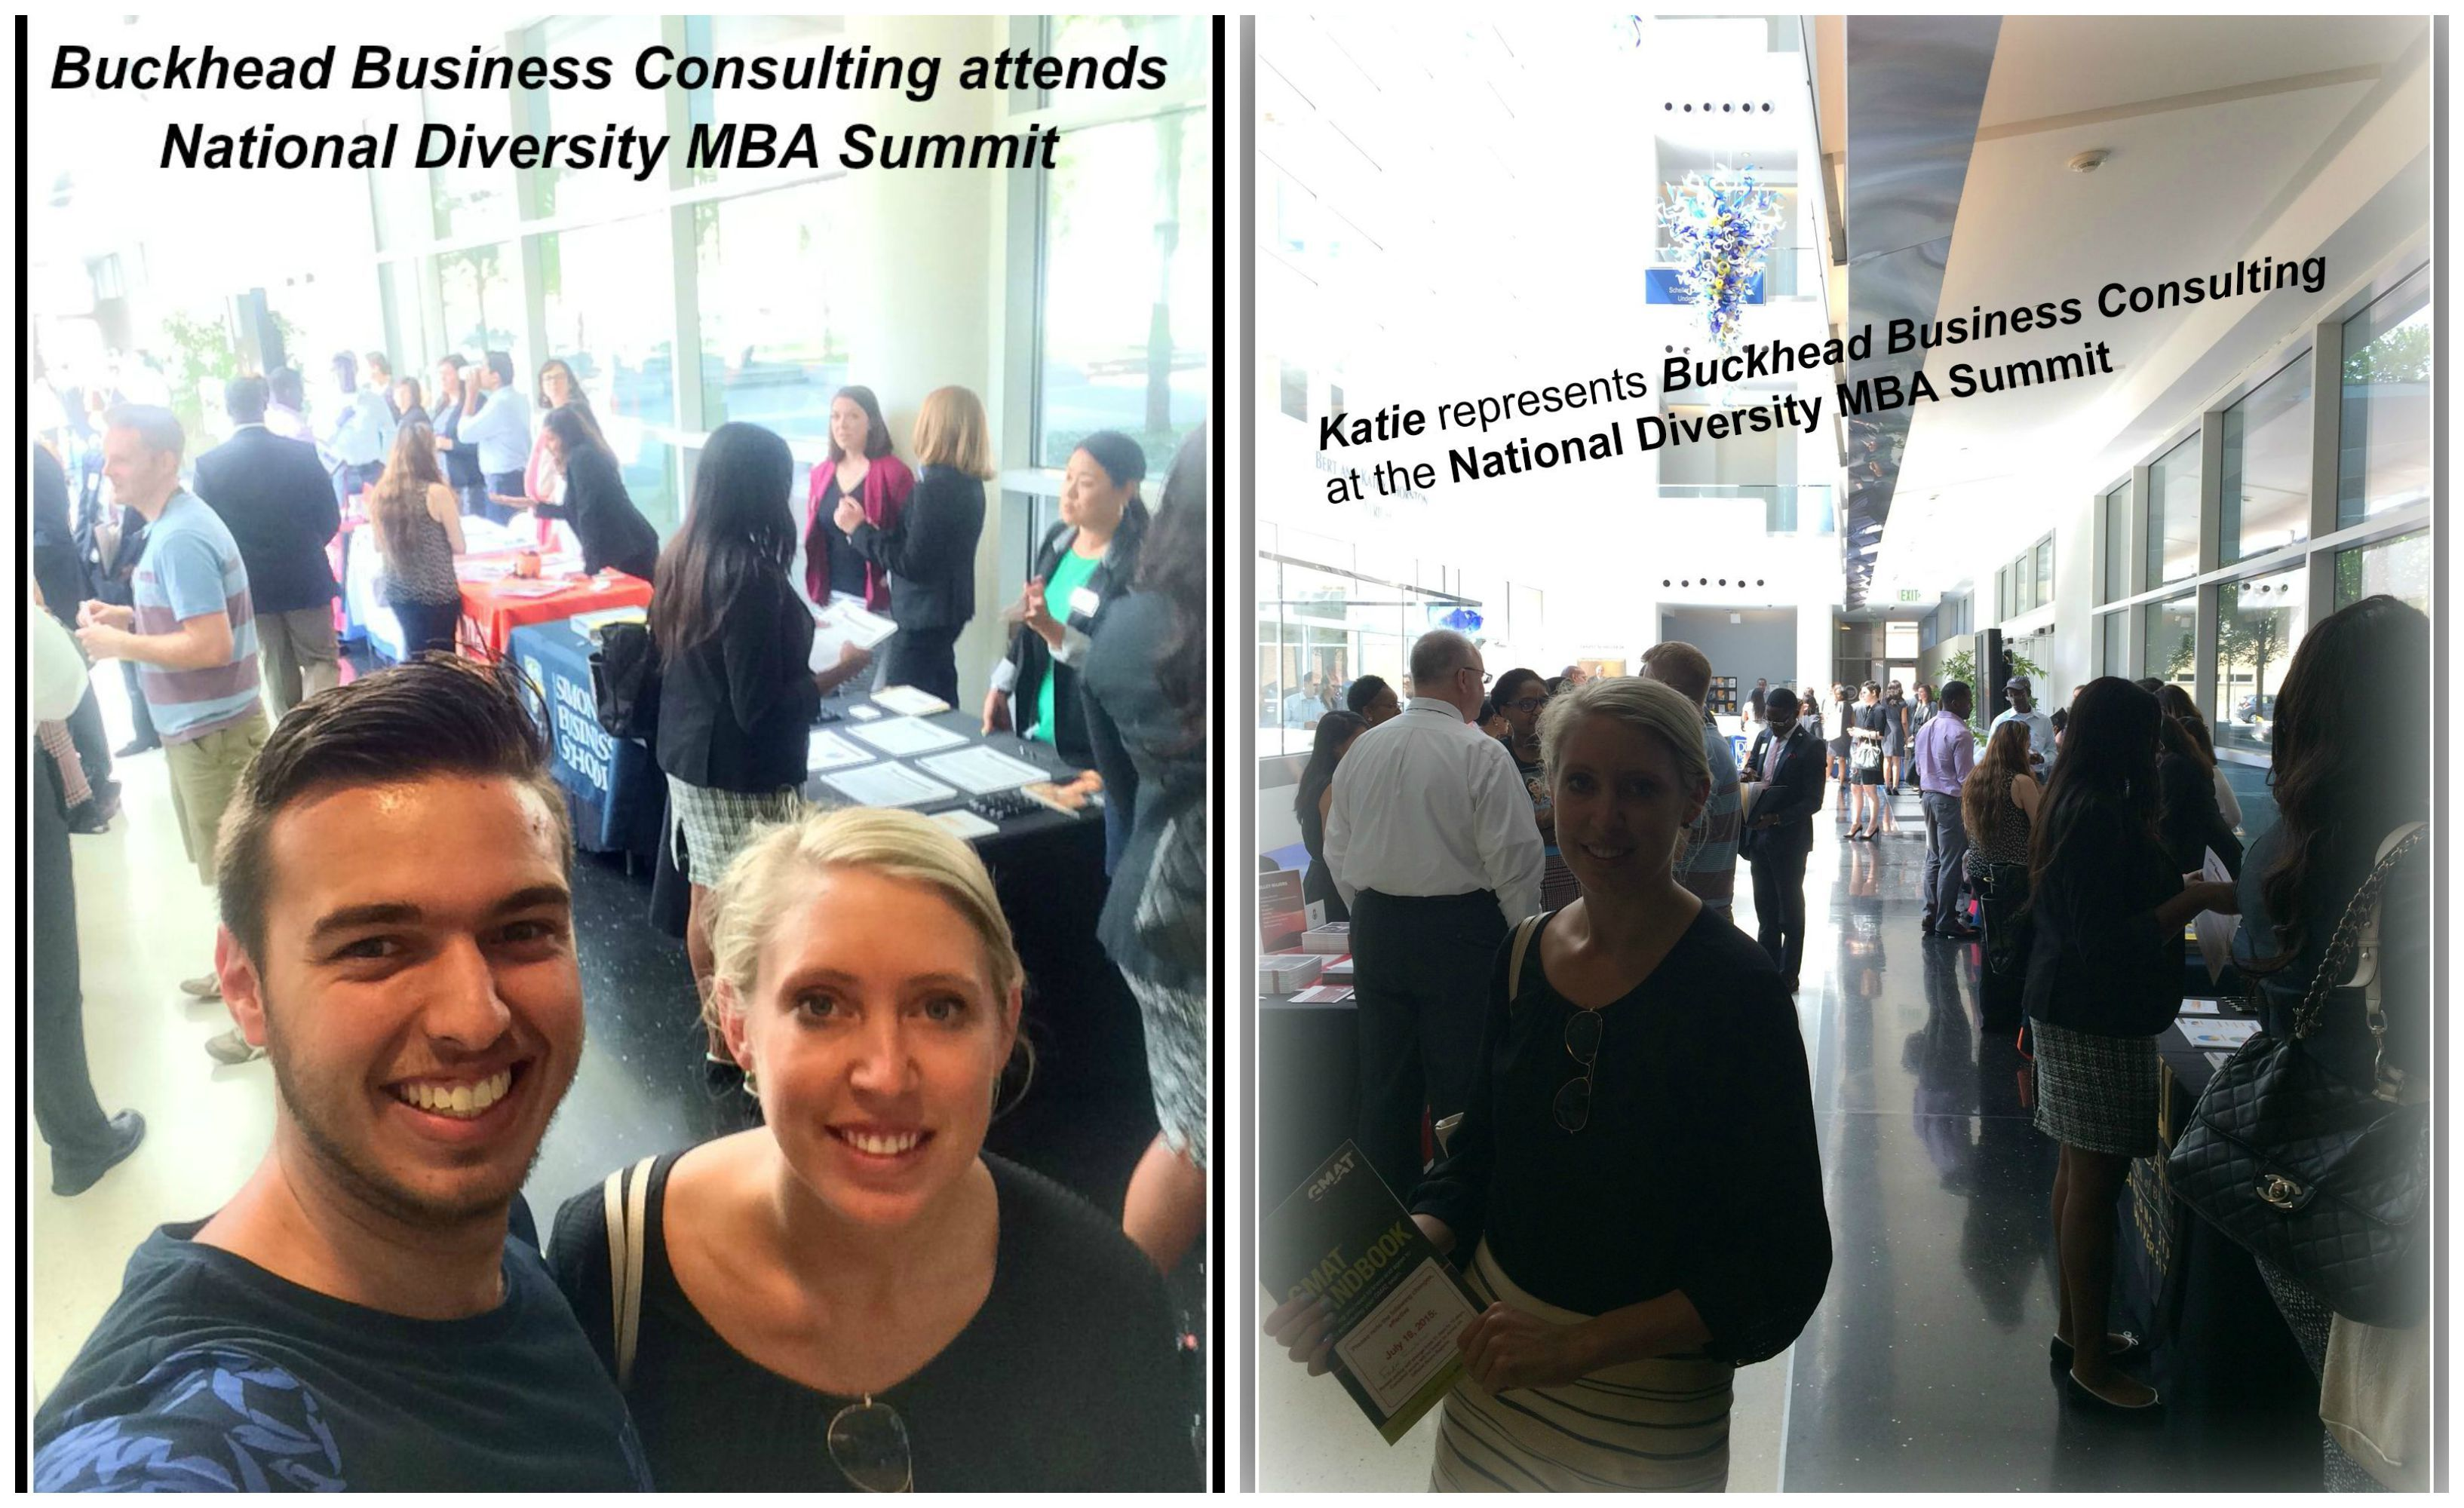 Katie recently attended the National Diversity MBA Summit